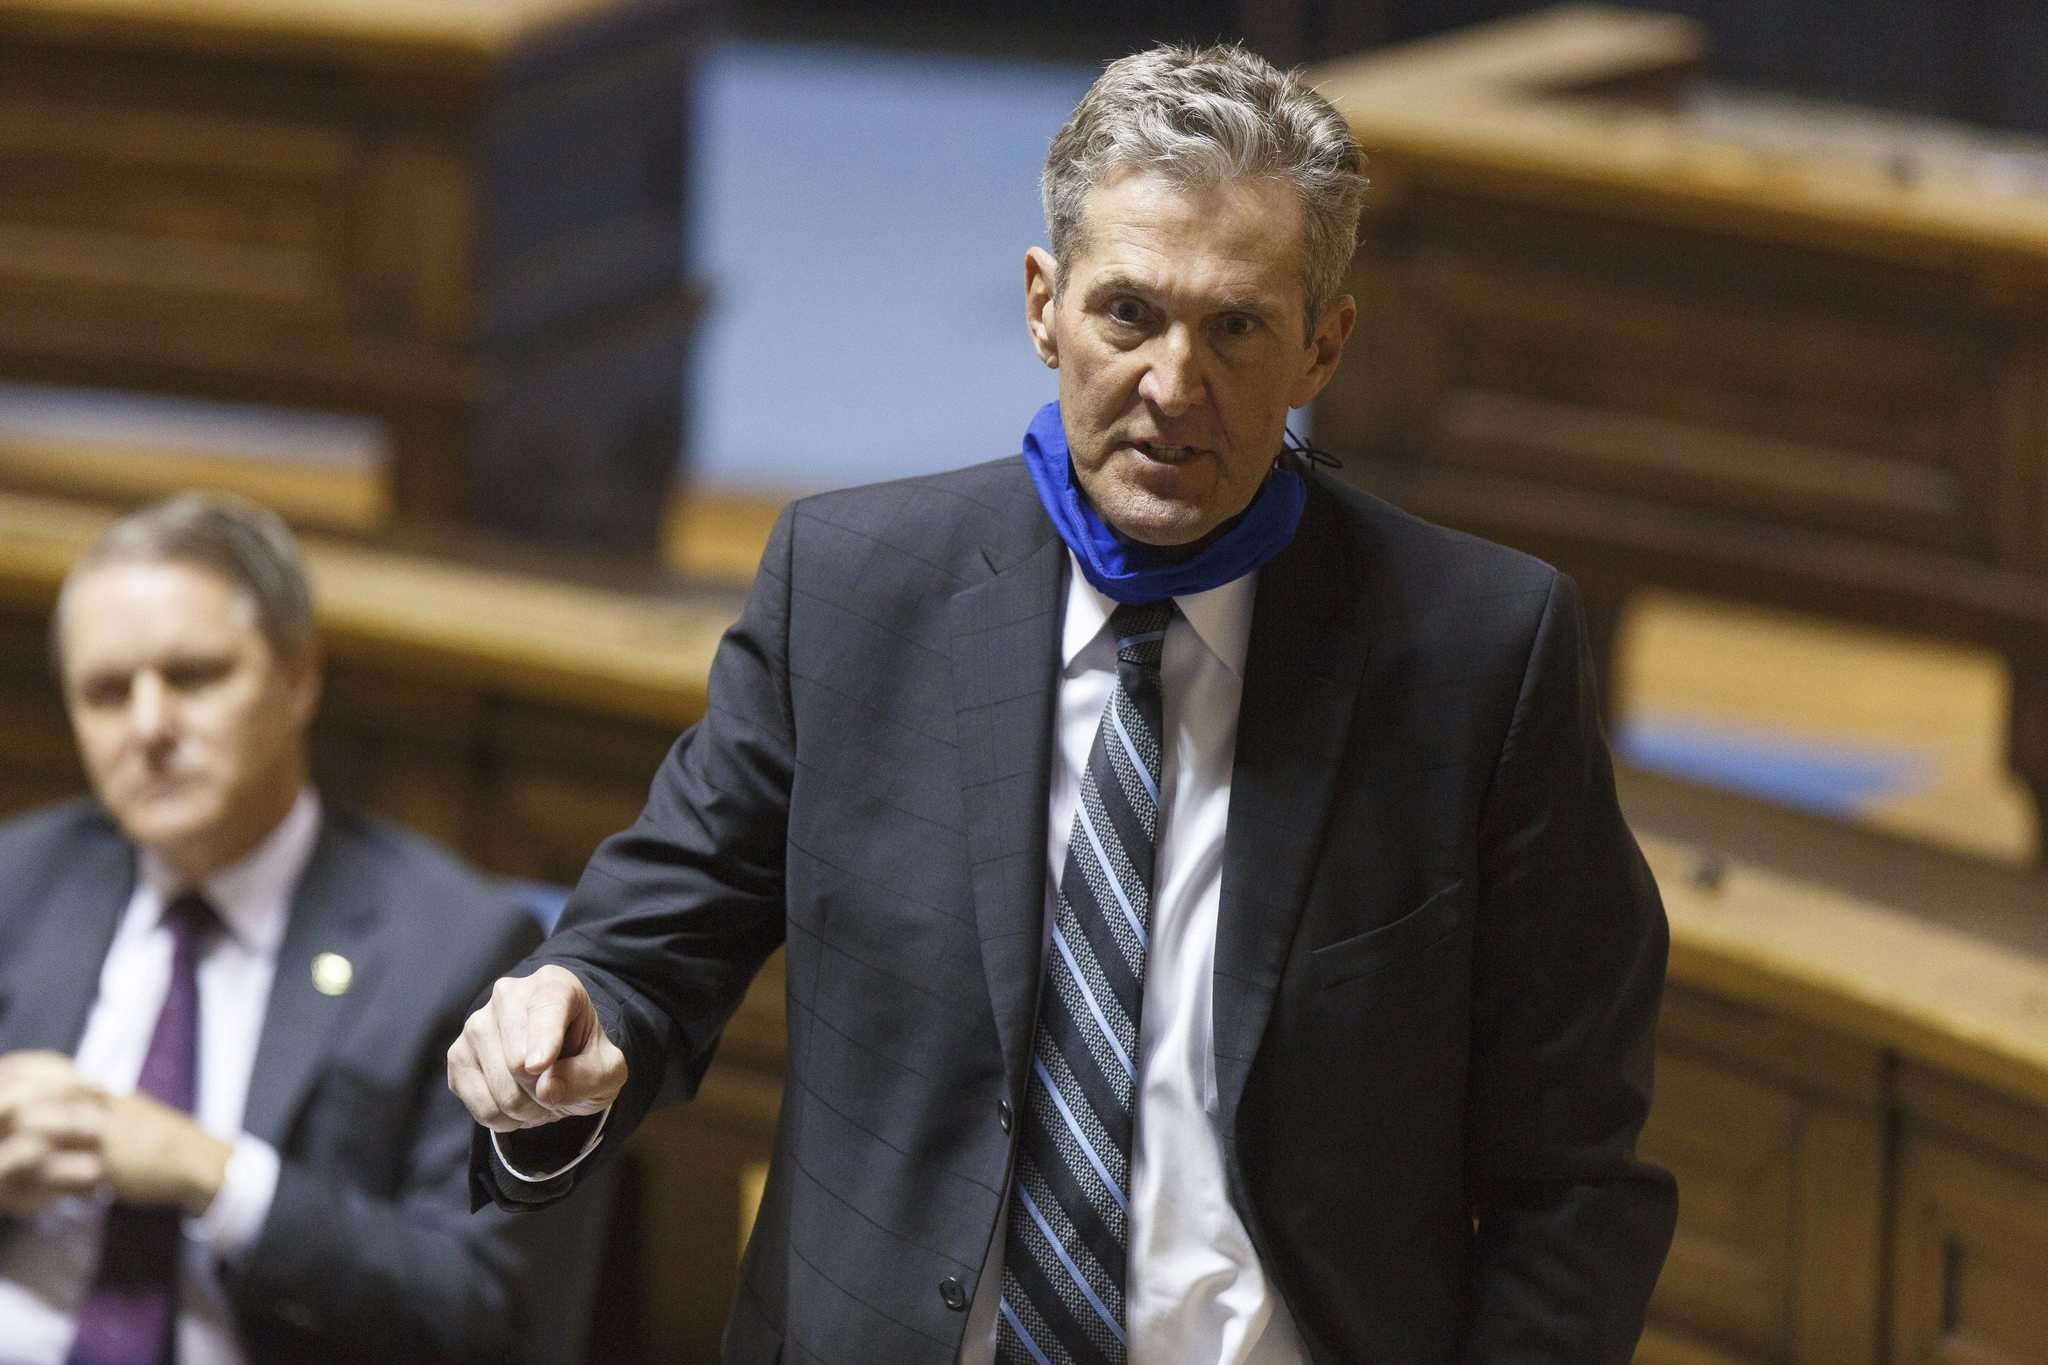 MIKE DEAL / WINNIPEG FREE PRESS</p><p>Premier Brian Pallister didn't indicate how much additional time students may be away from school, although he acknowledged that parents would have to be given advanced warning.</p></p>